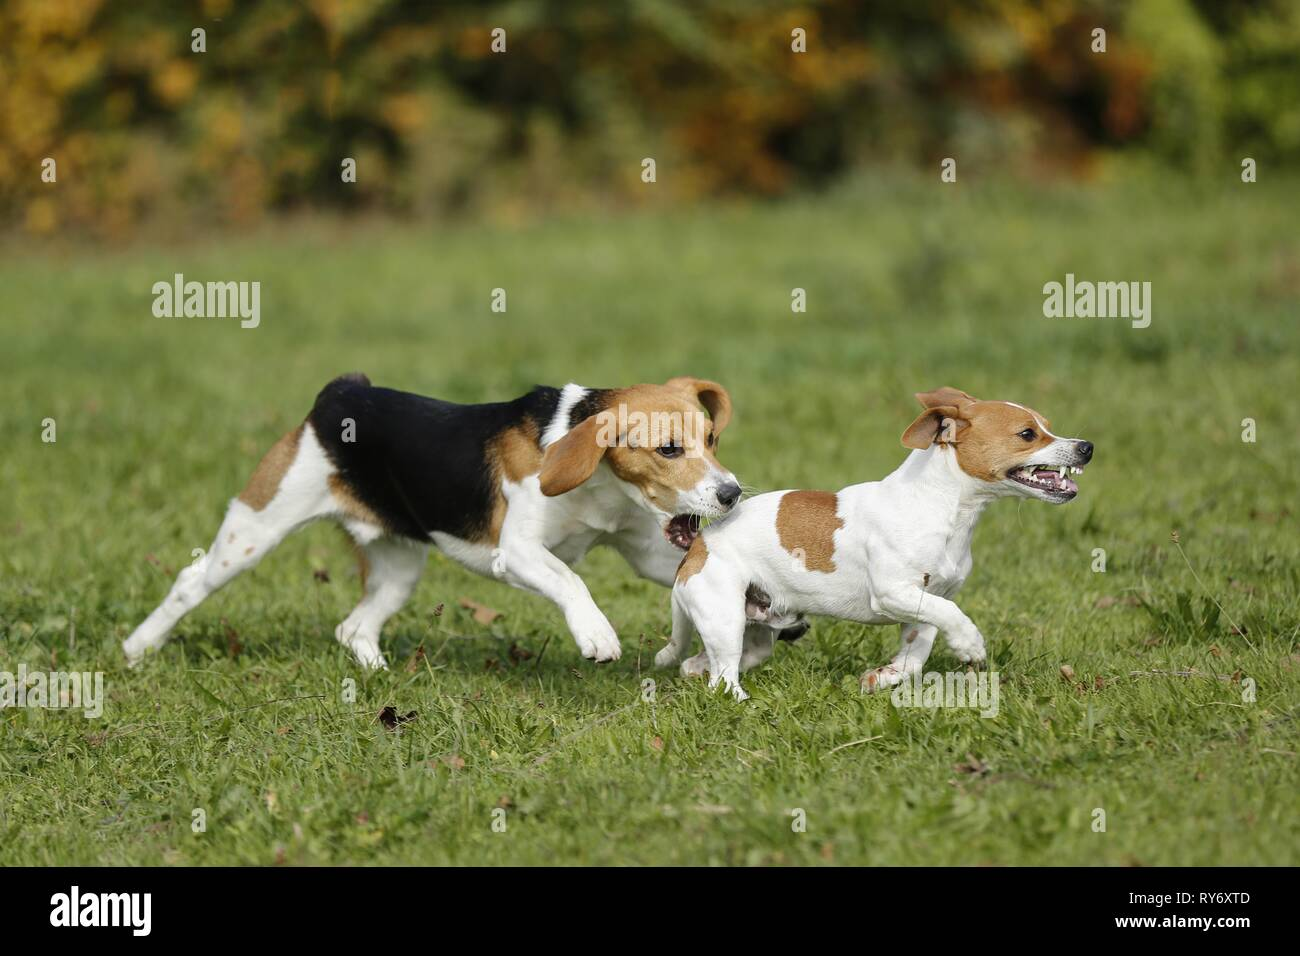 2 dogs - Stock Image